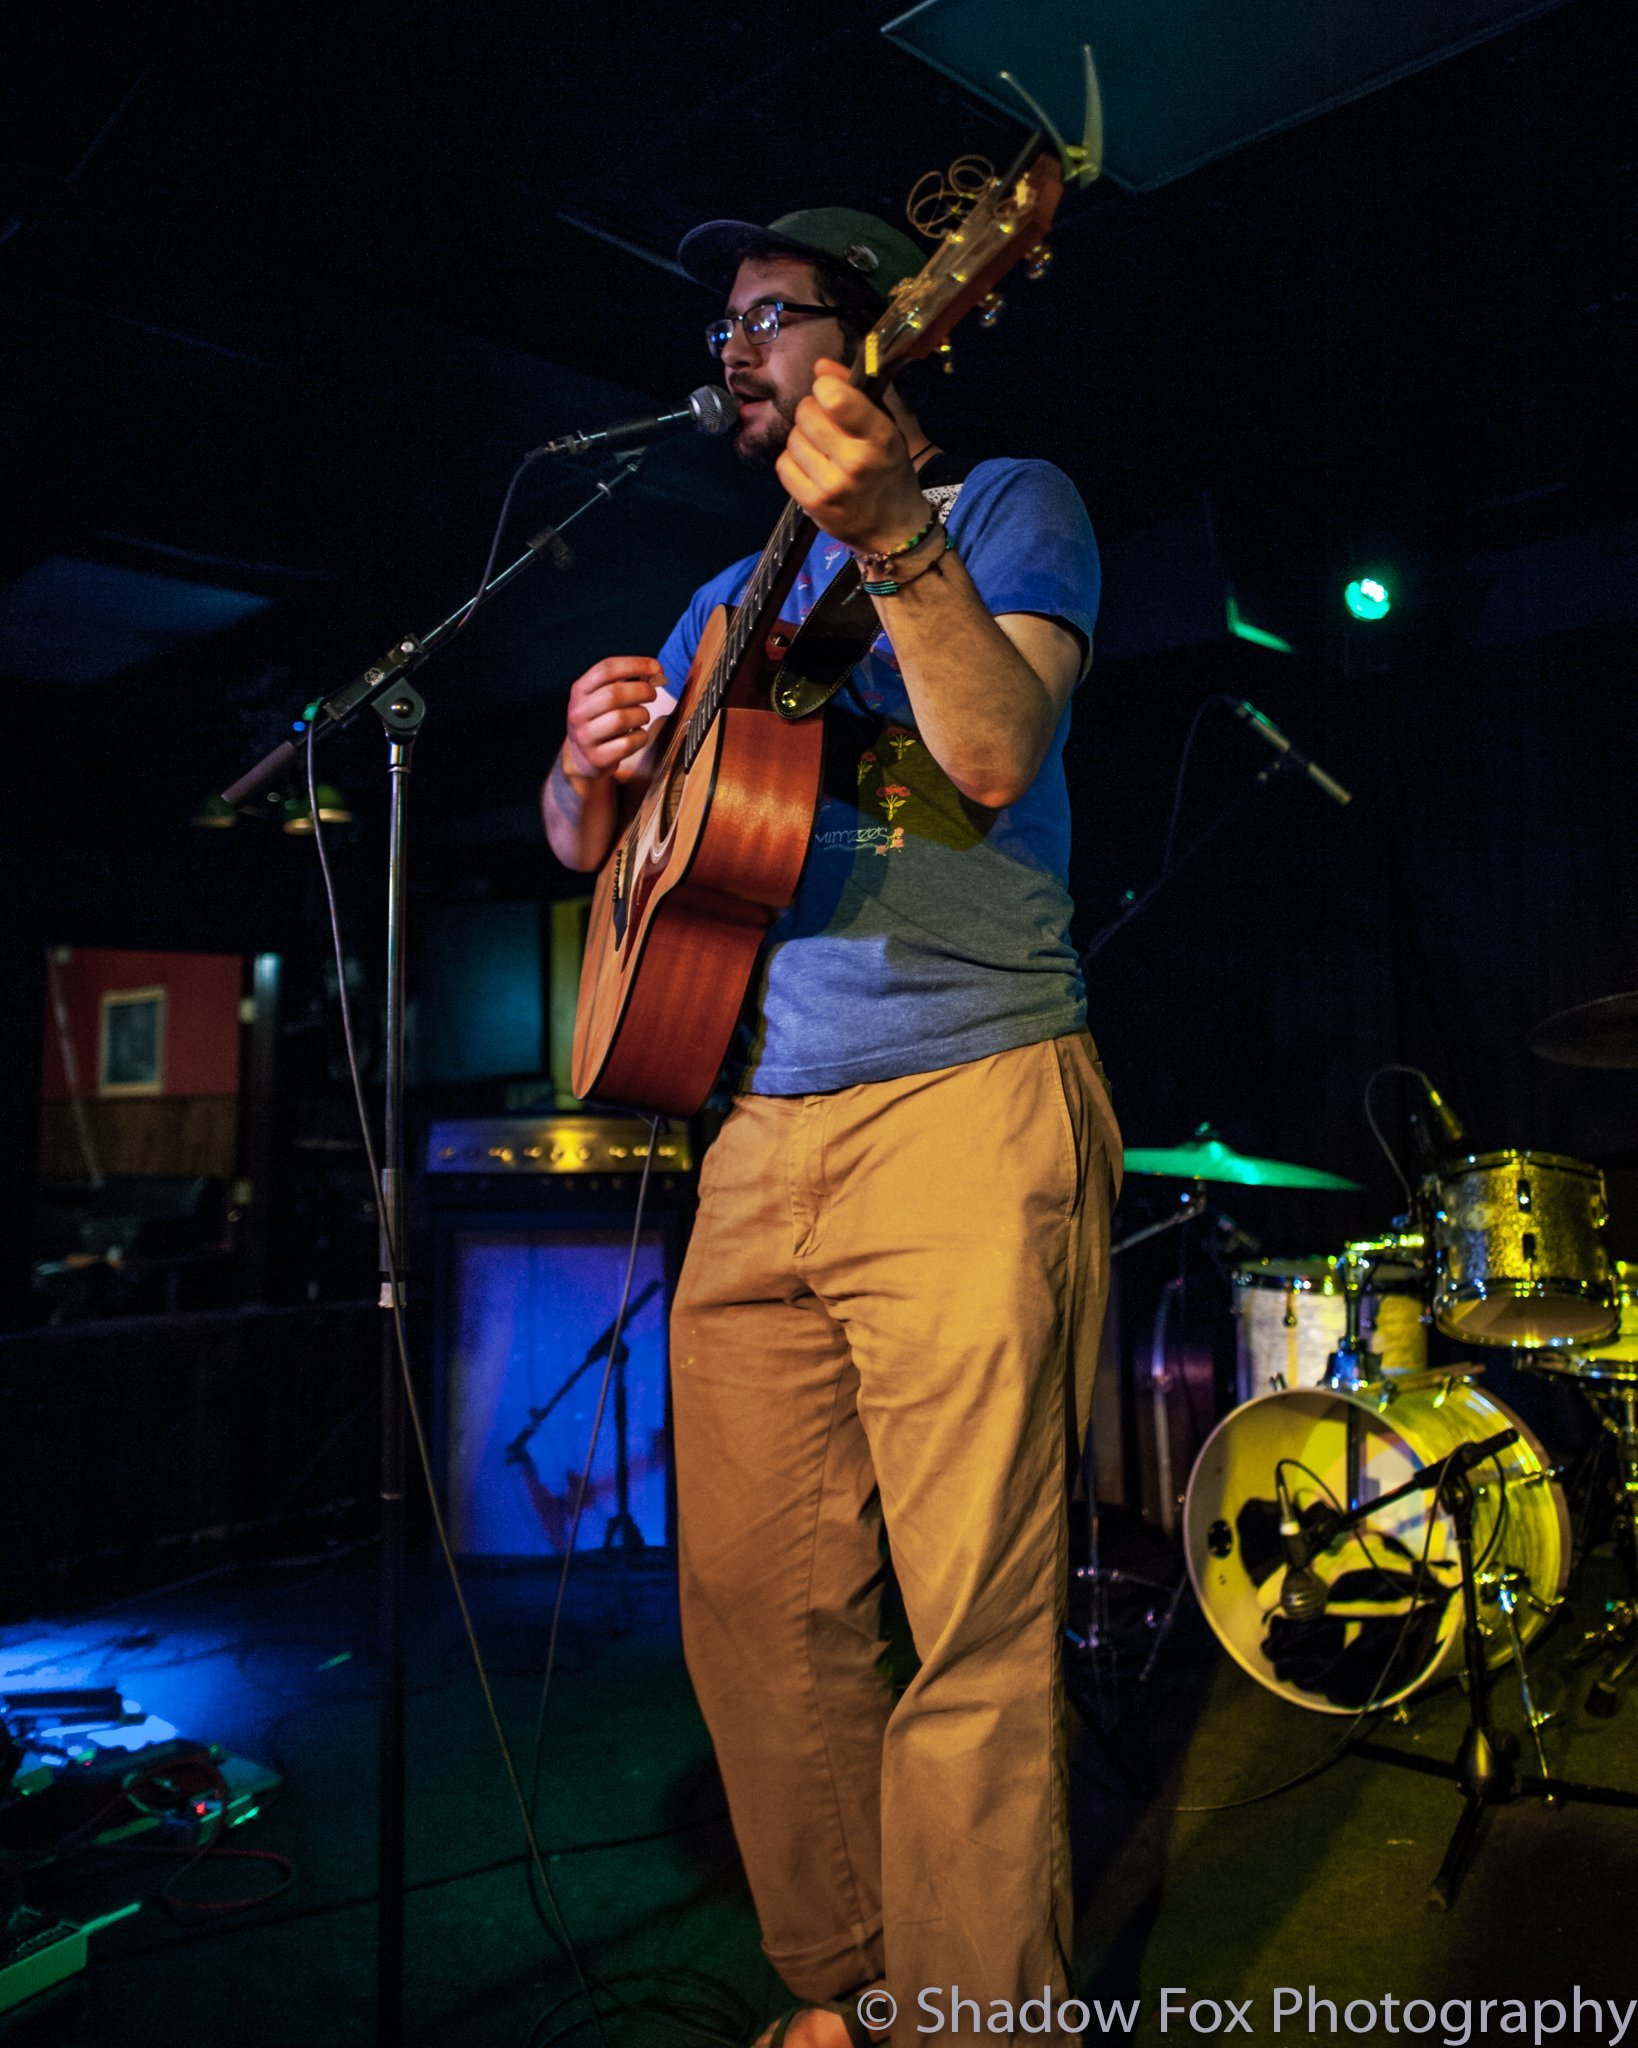 Satchel Bruna playing at The Mill in Iowa City